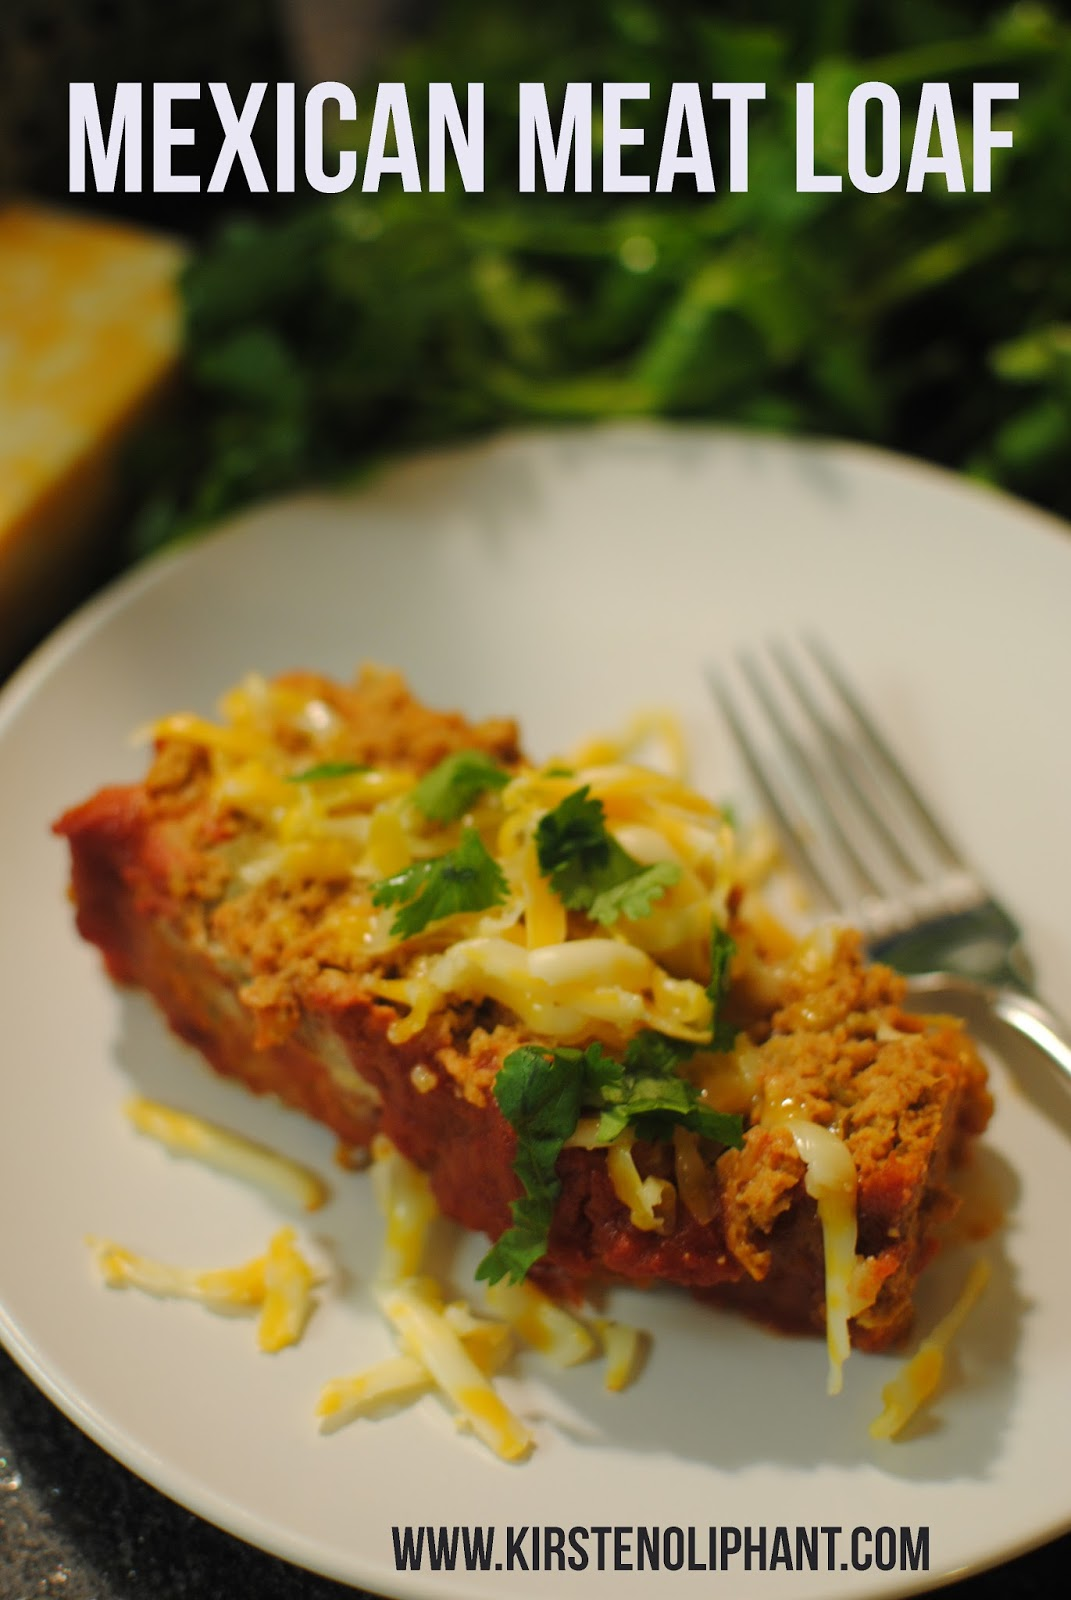 Mexican Meat Loaf www.kirstenoliphant.com